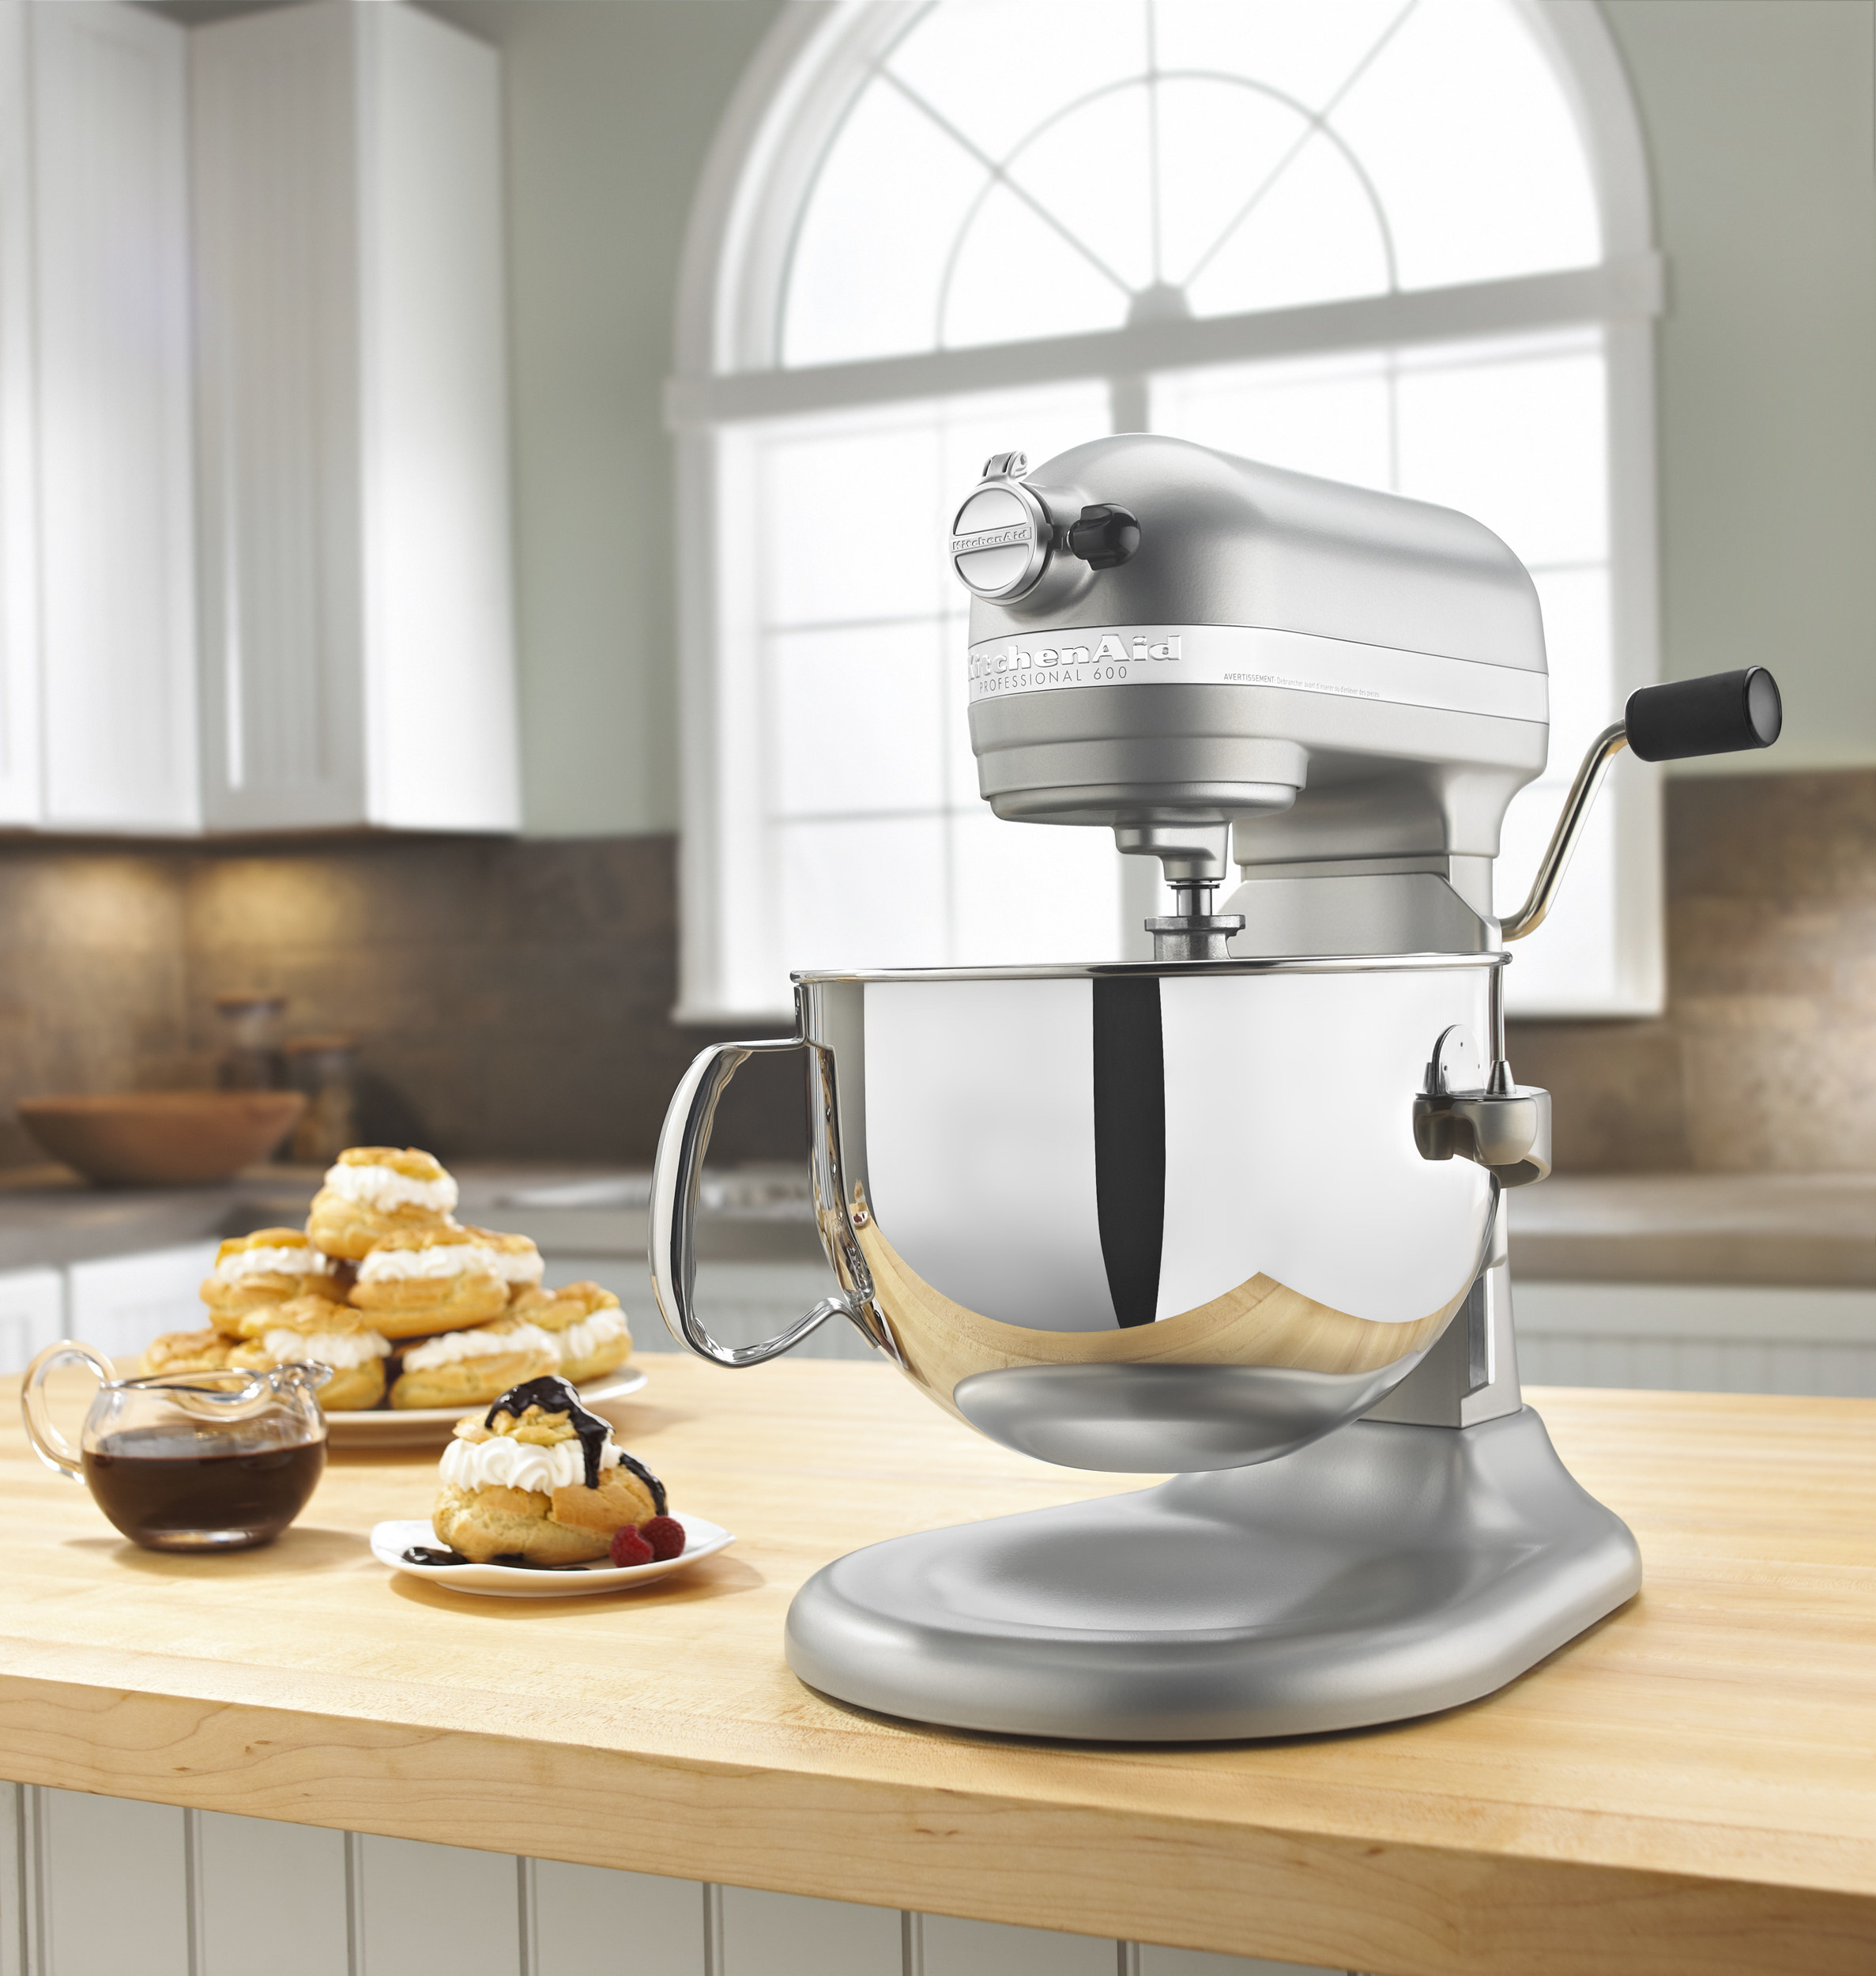 the mixer in gray next to baked goods